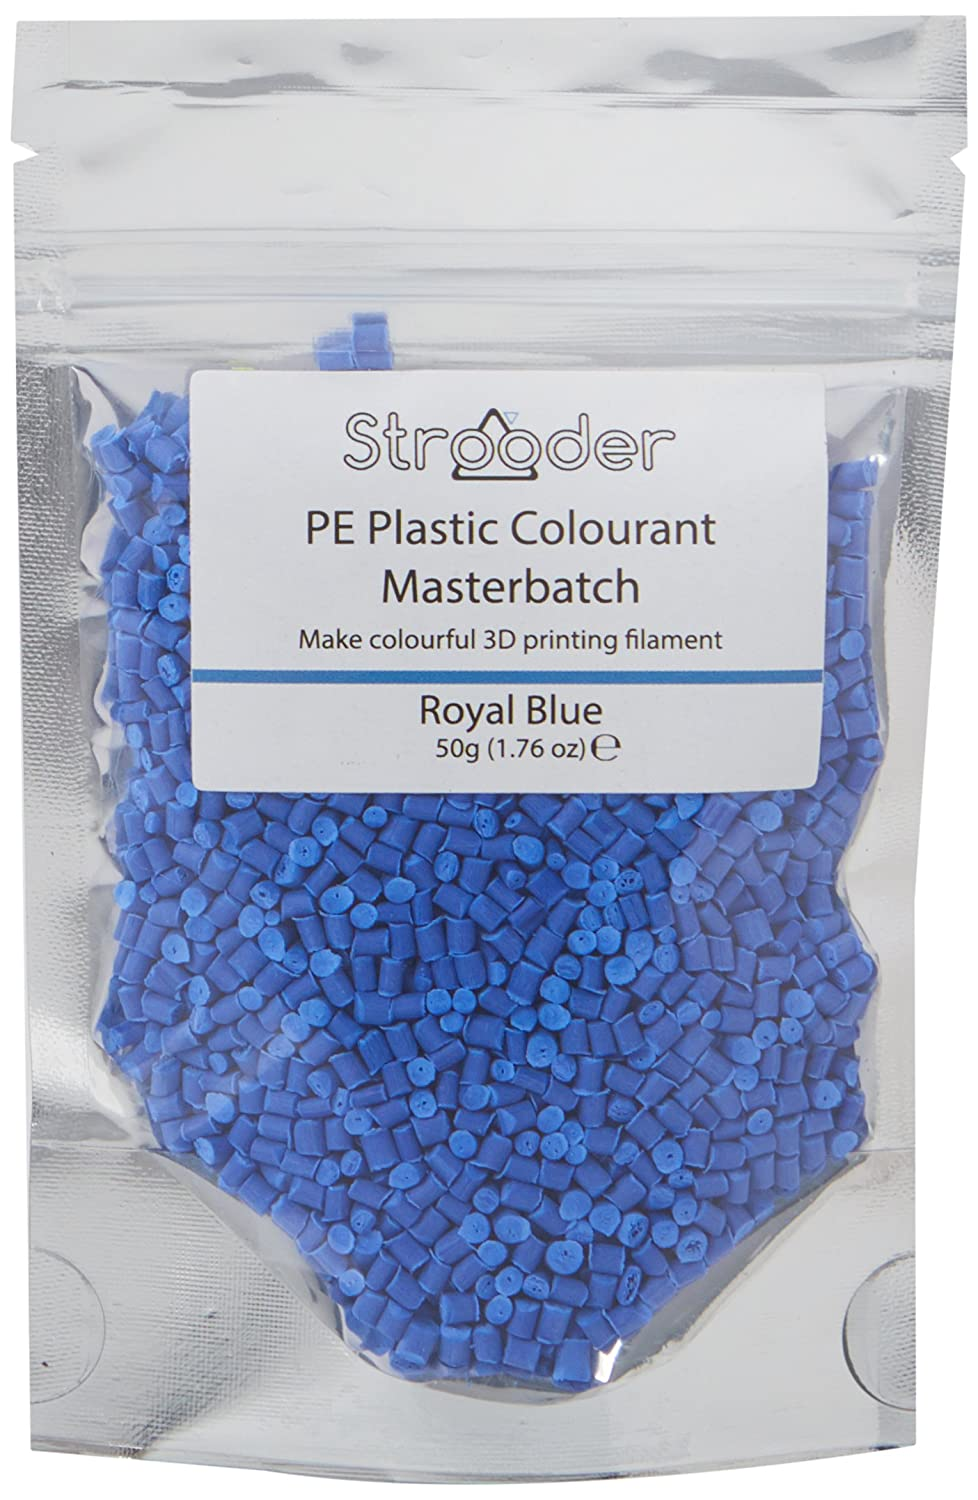 Strooder PE-MBRB Master batch colorant for PE, 50 g, Royal Blue Omnidynamics